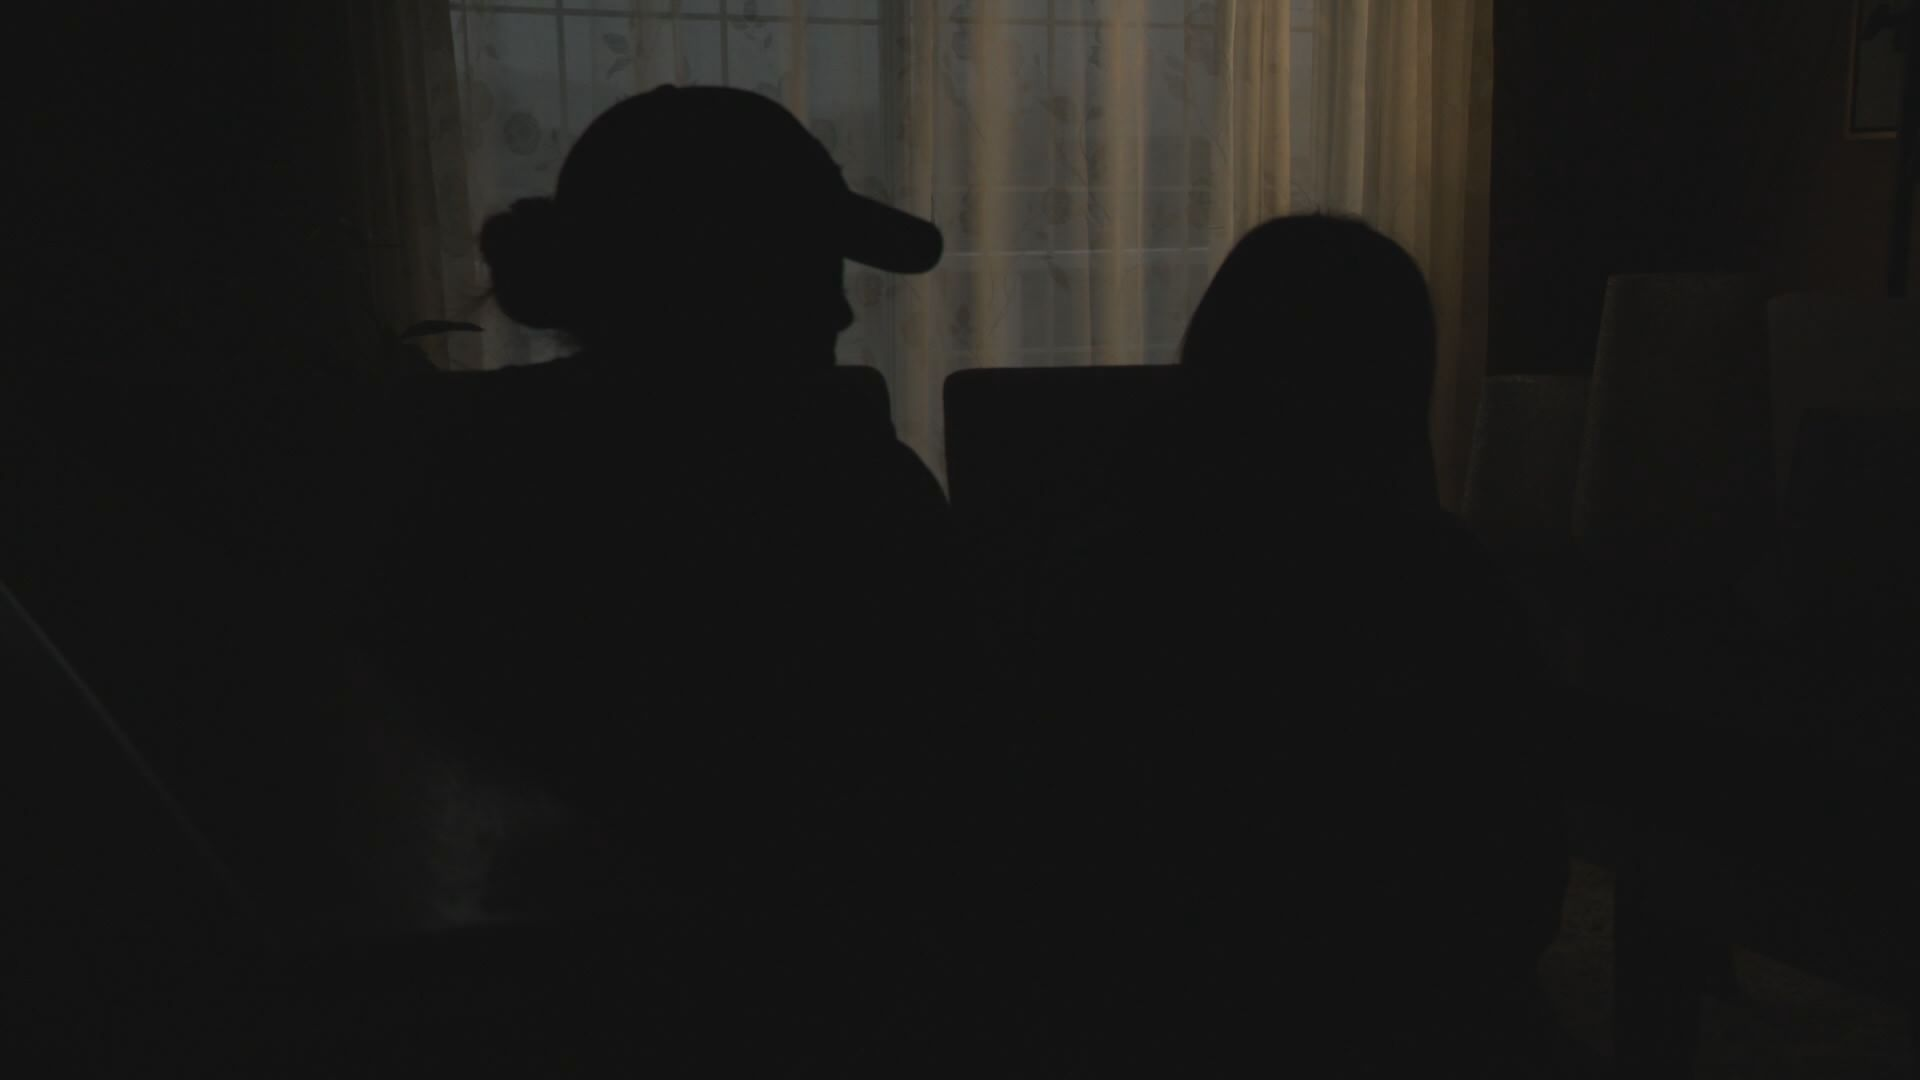 Port Coquitlam teen and mother speak out about alleged assault